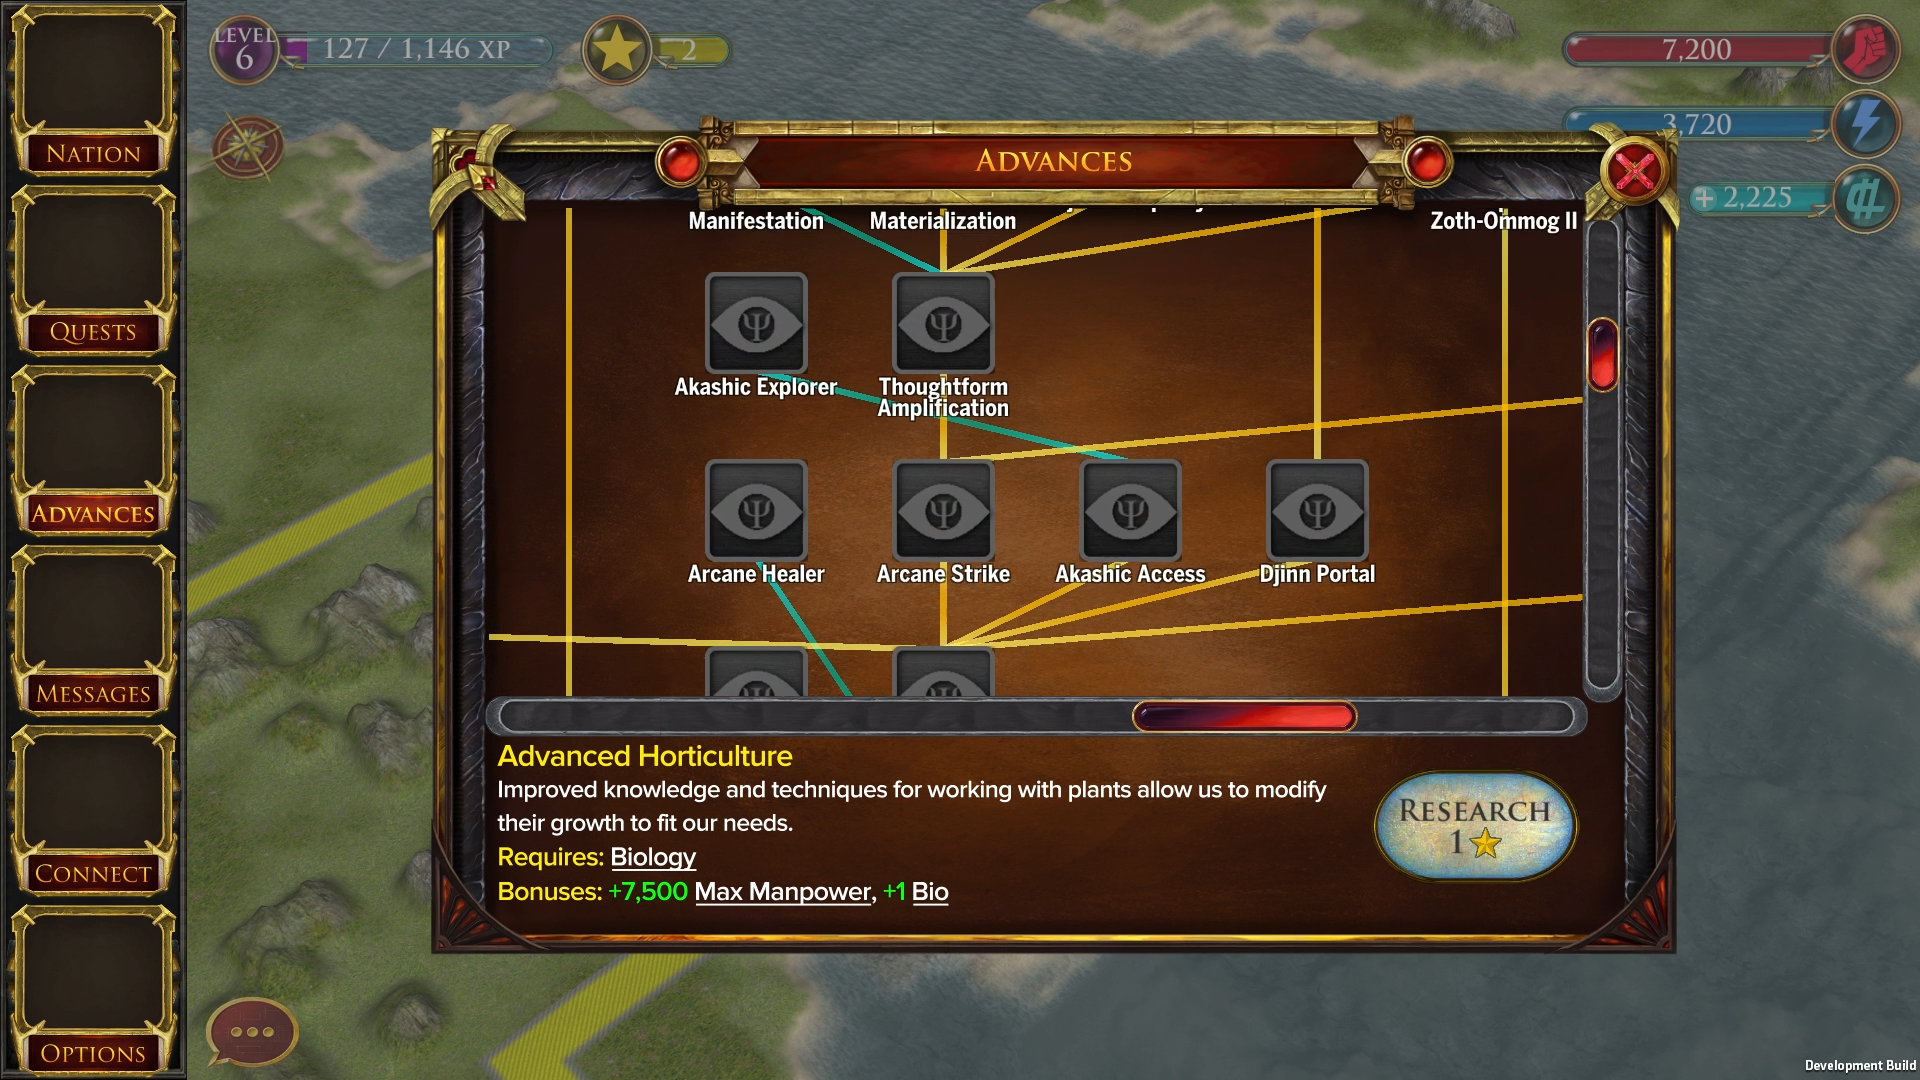 Development screenshot from the new War of Conquest